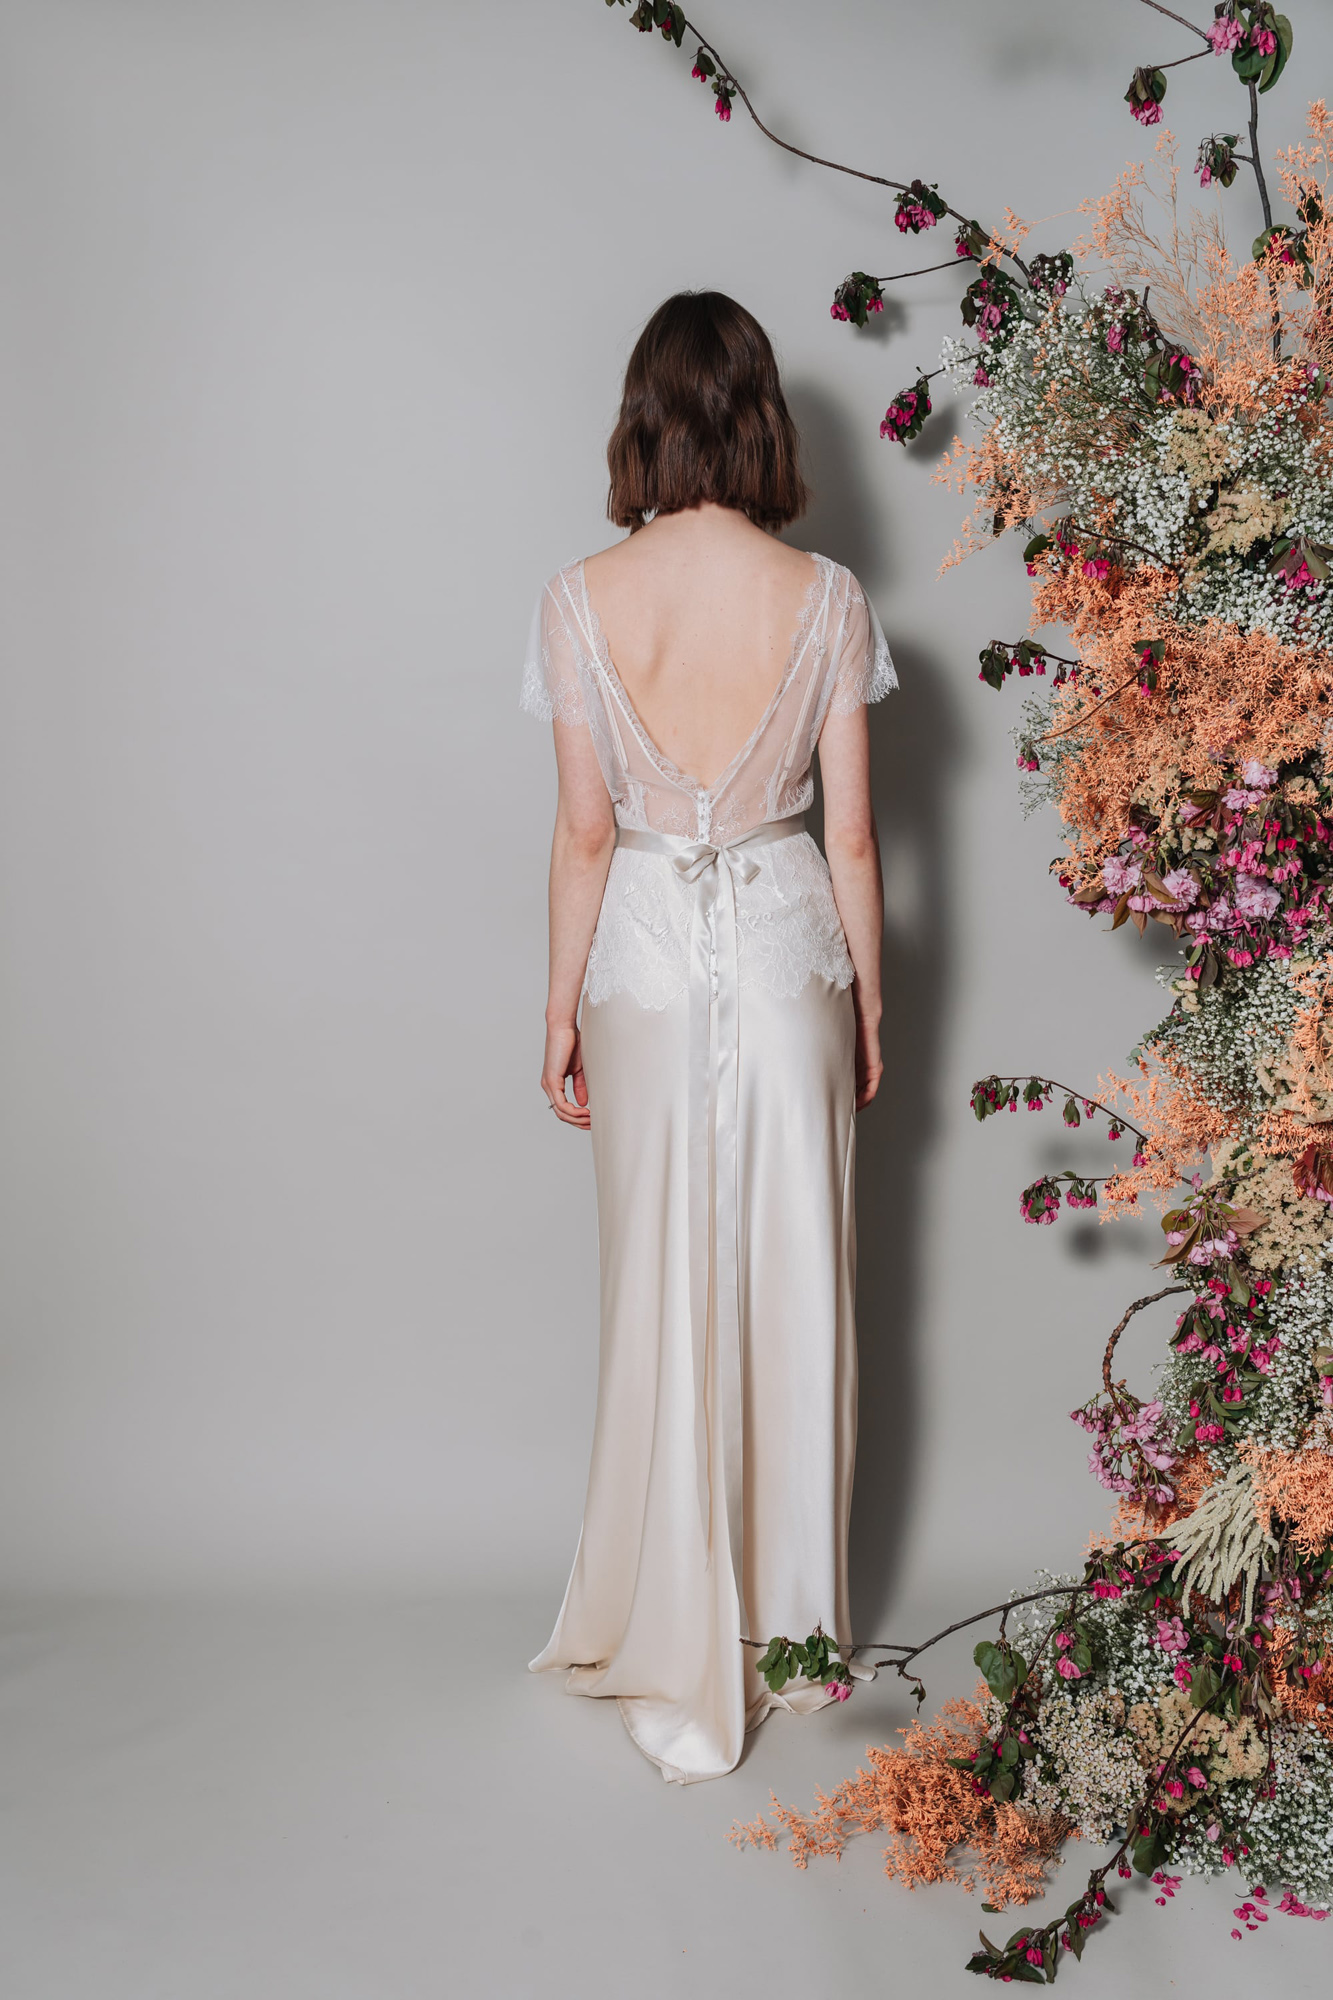 Kate-Beaumont-Sheffield-Lilac-Bridal-Separates-Lace-and-Silk-Wedding-Gown-9.jpg